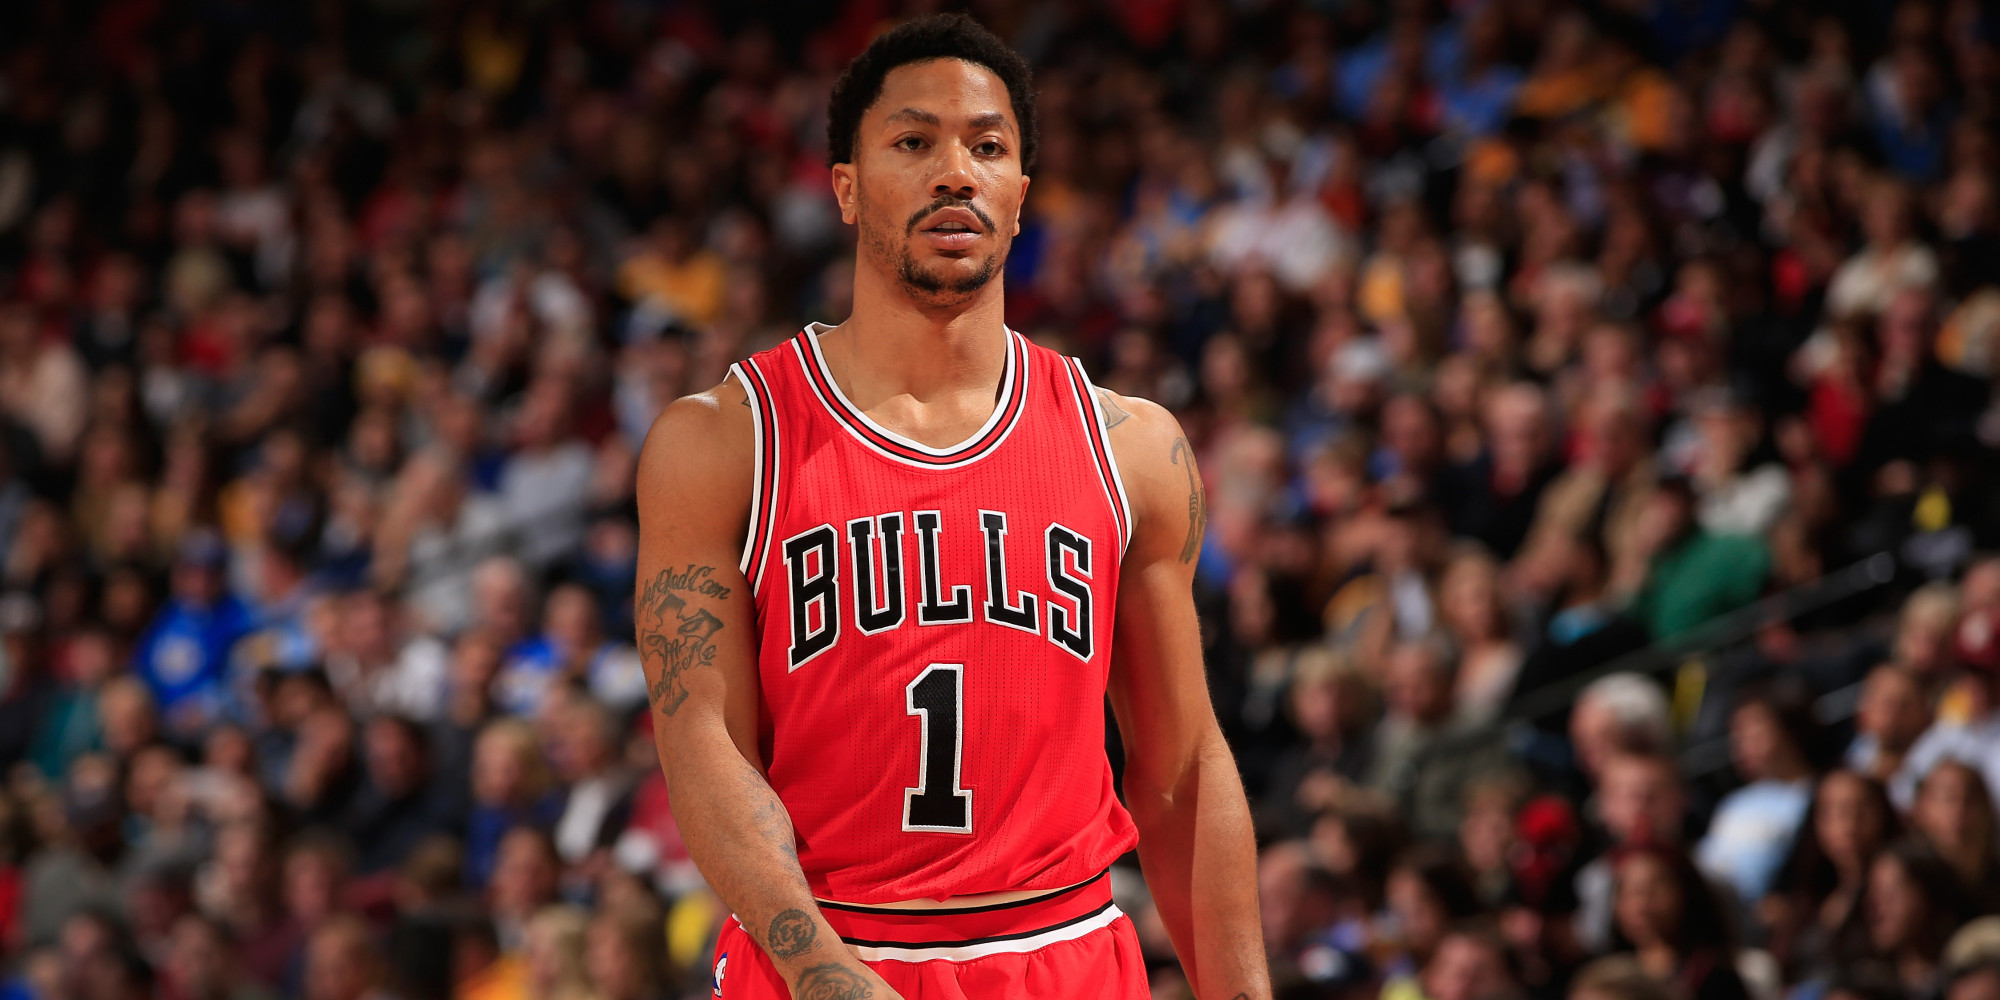 Bulls Derrick Rose Wears 'I Can't Breathe' Shirt At Game | The ...